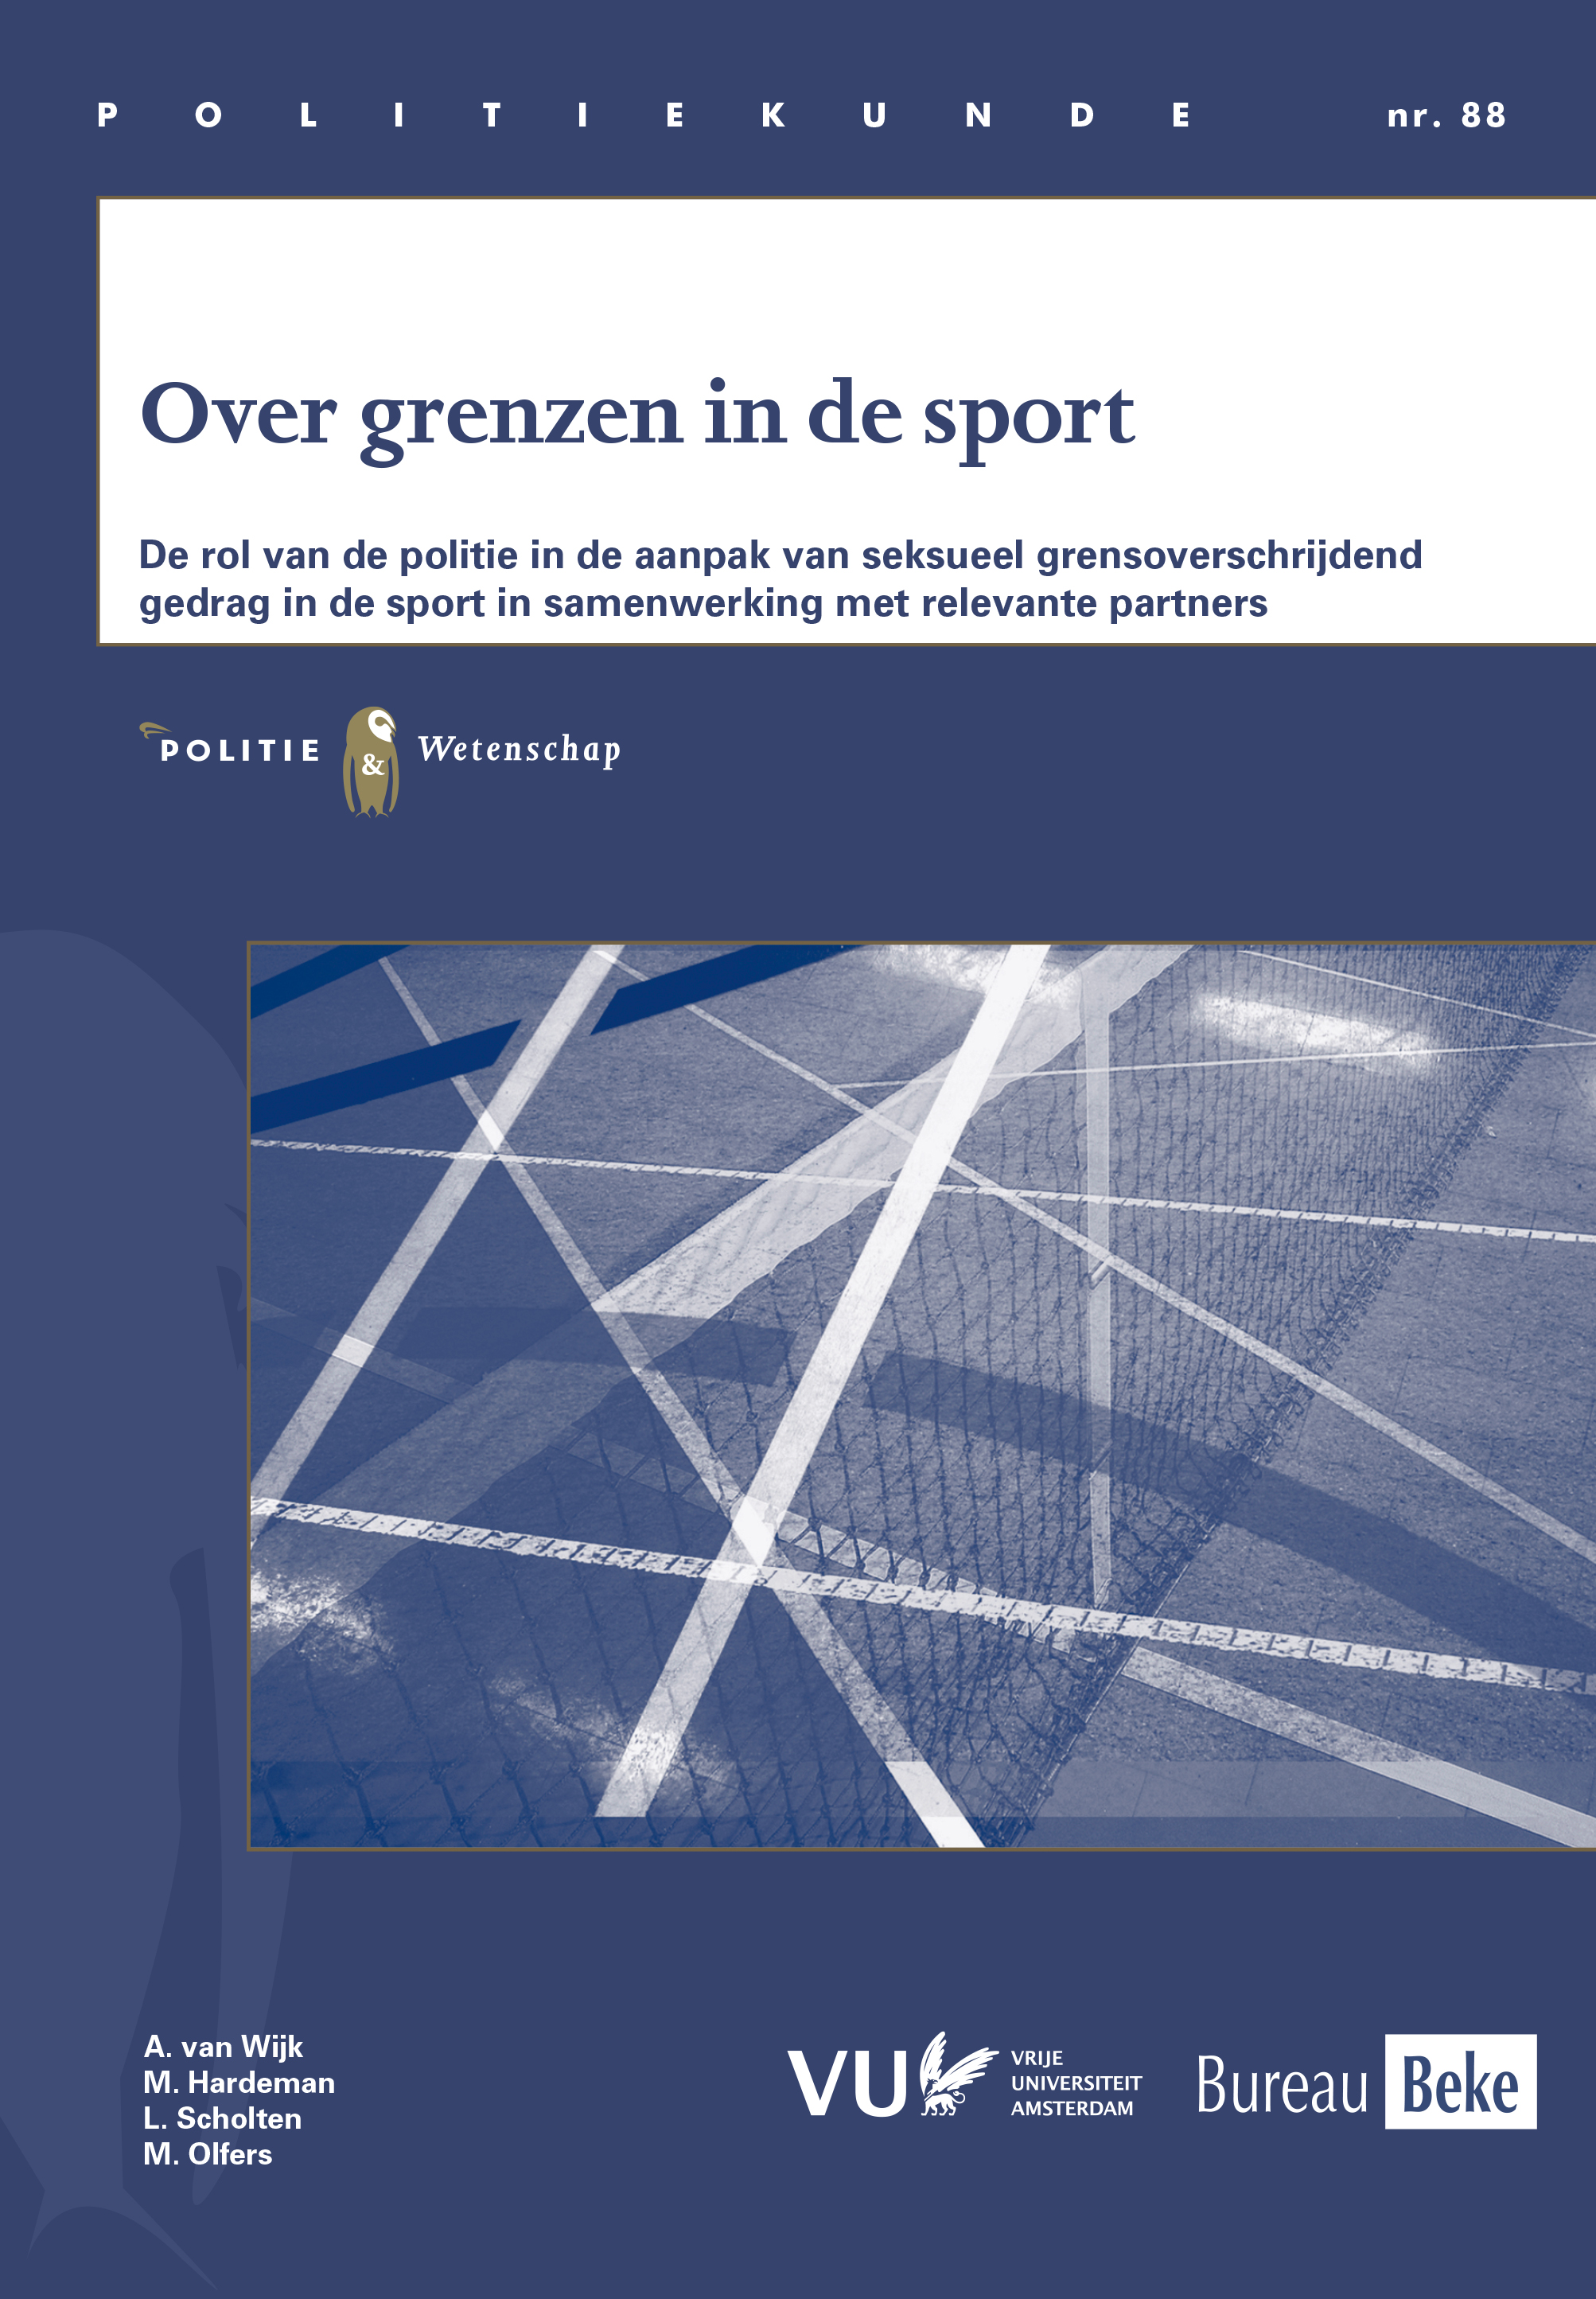 Over grenzen in de sport